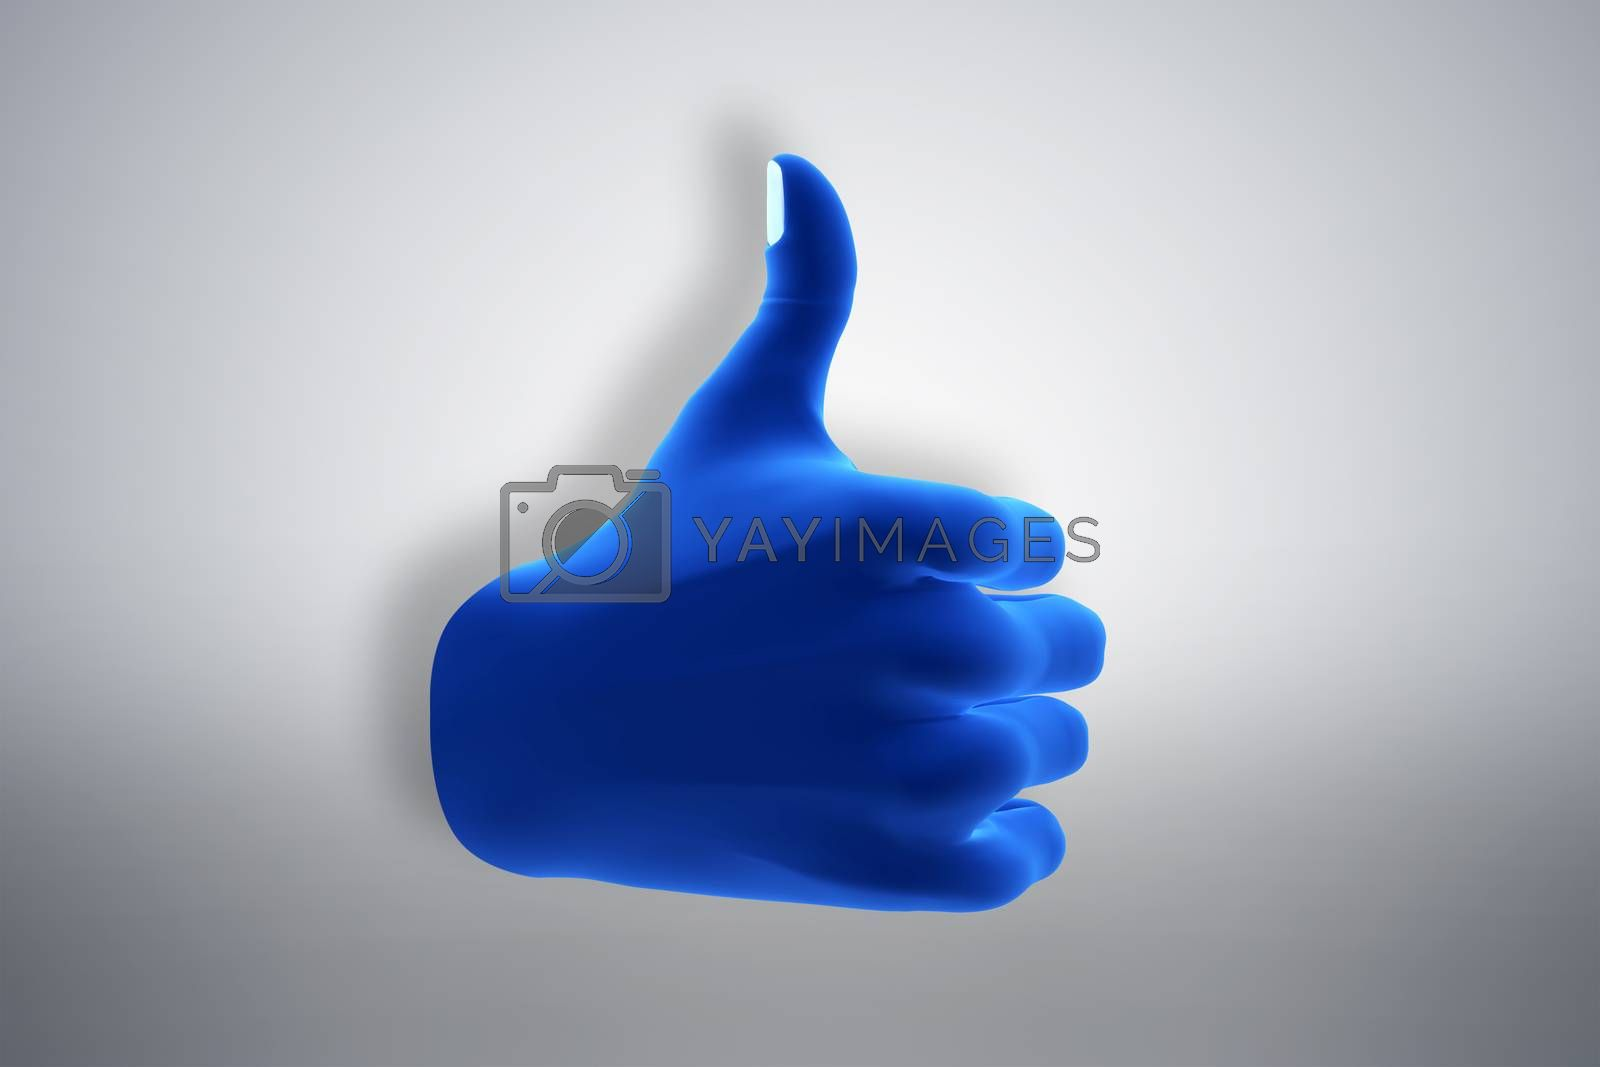 Royalty free image of Blue hand gesture showing OK, like, agree. Social media by photocreo